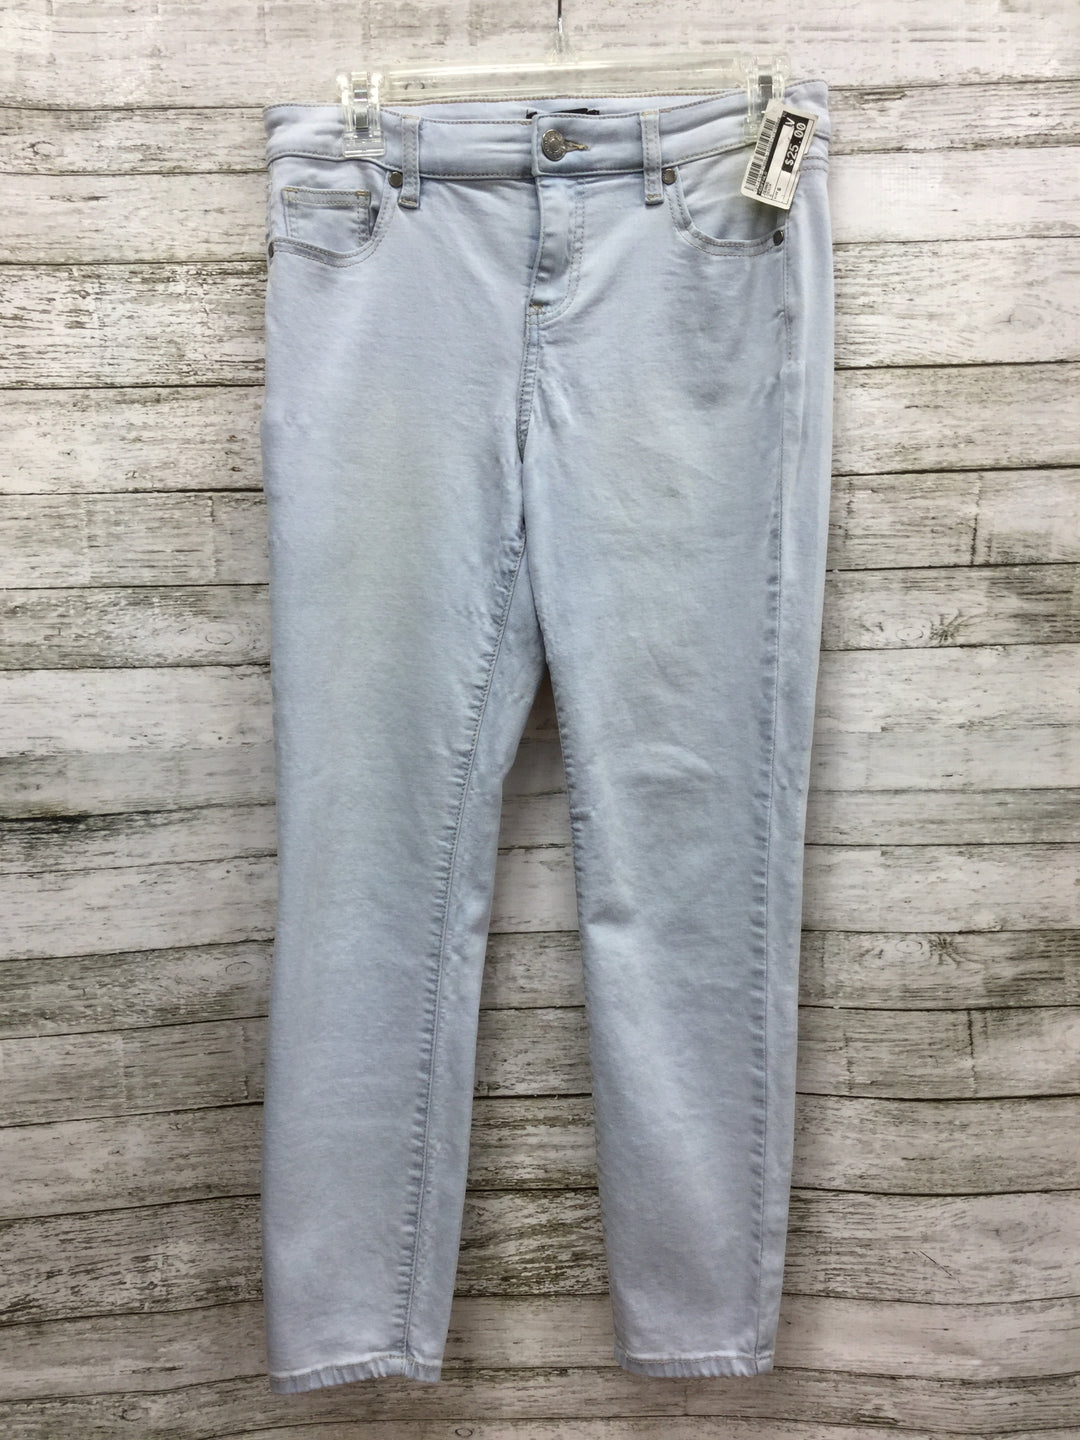 Primary Photo - BRAND: BUFFALO , STYLE: JEANS , COLOR: DENIM , SIZE: 6 , SKU: 127-4169-27909, , LIGHT WASH JEANS IN GOOD CONDITION WITH SOME MINOR WEAR.